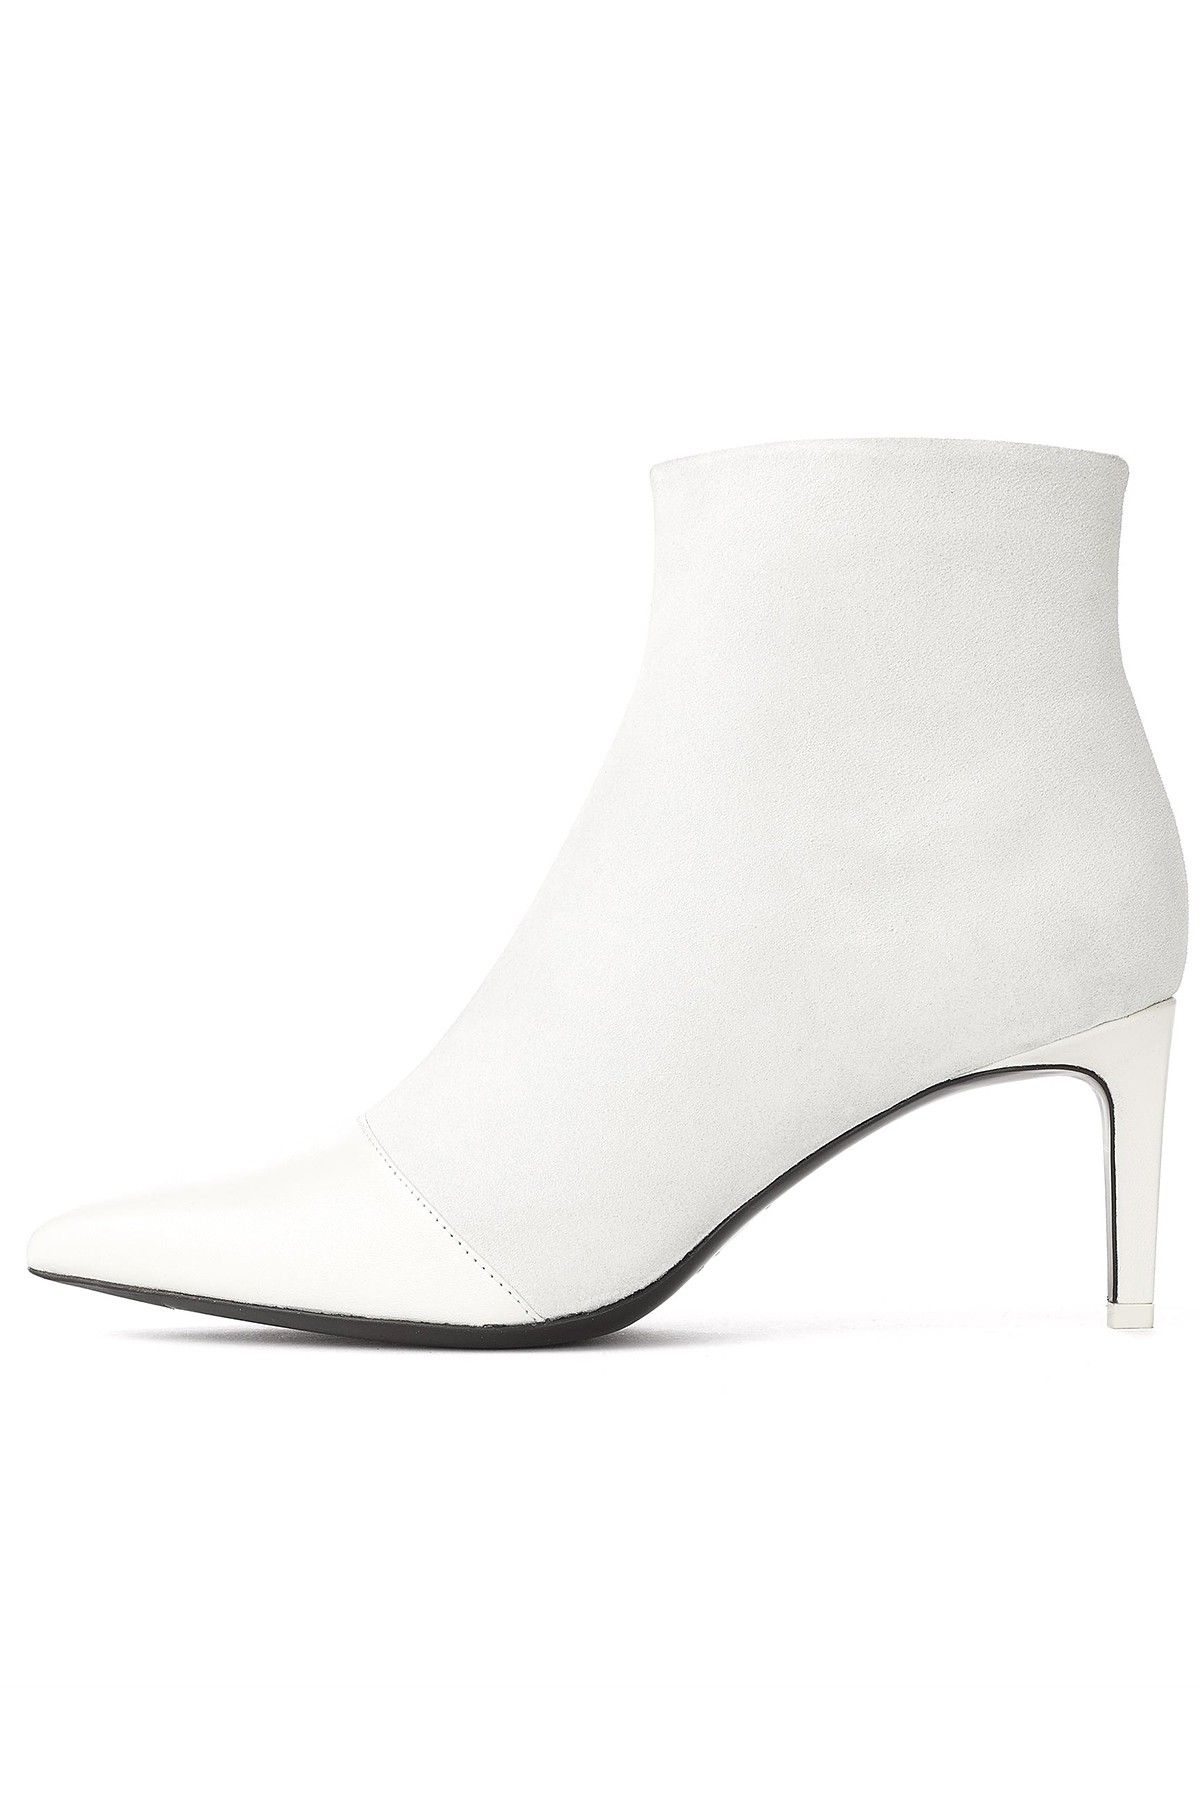 568415ed8fd Rag and Bone Beha Boot in White Loeffler Randall